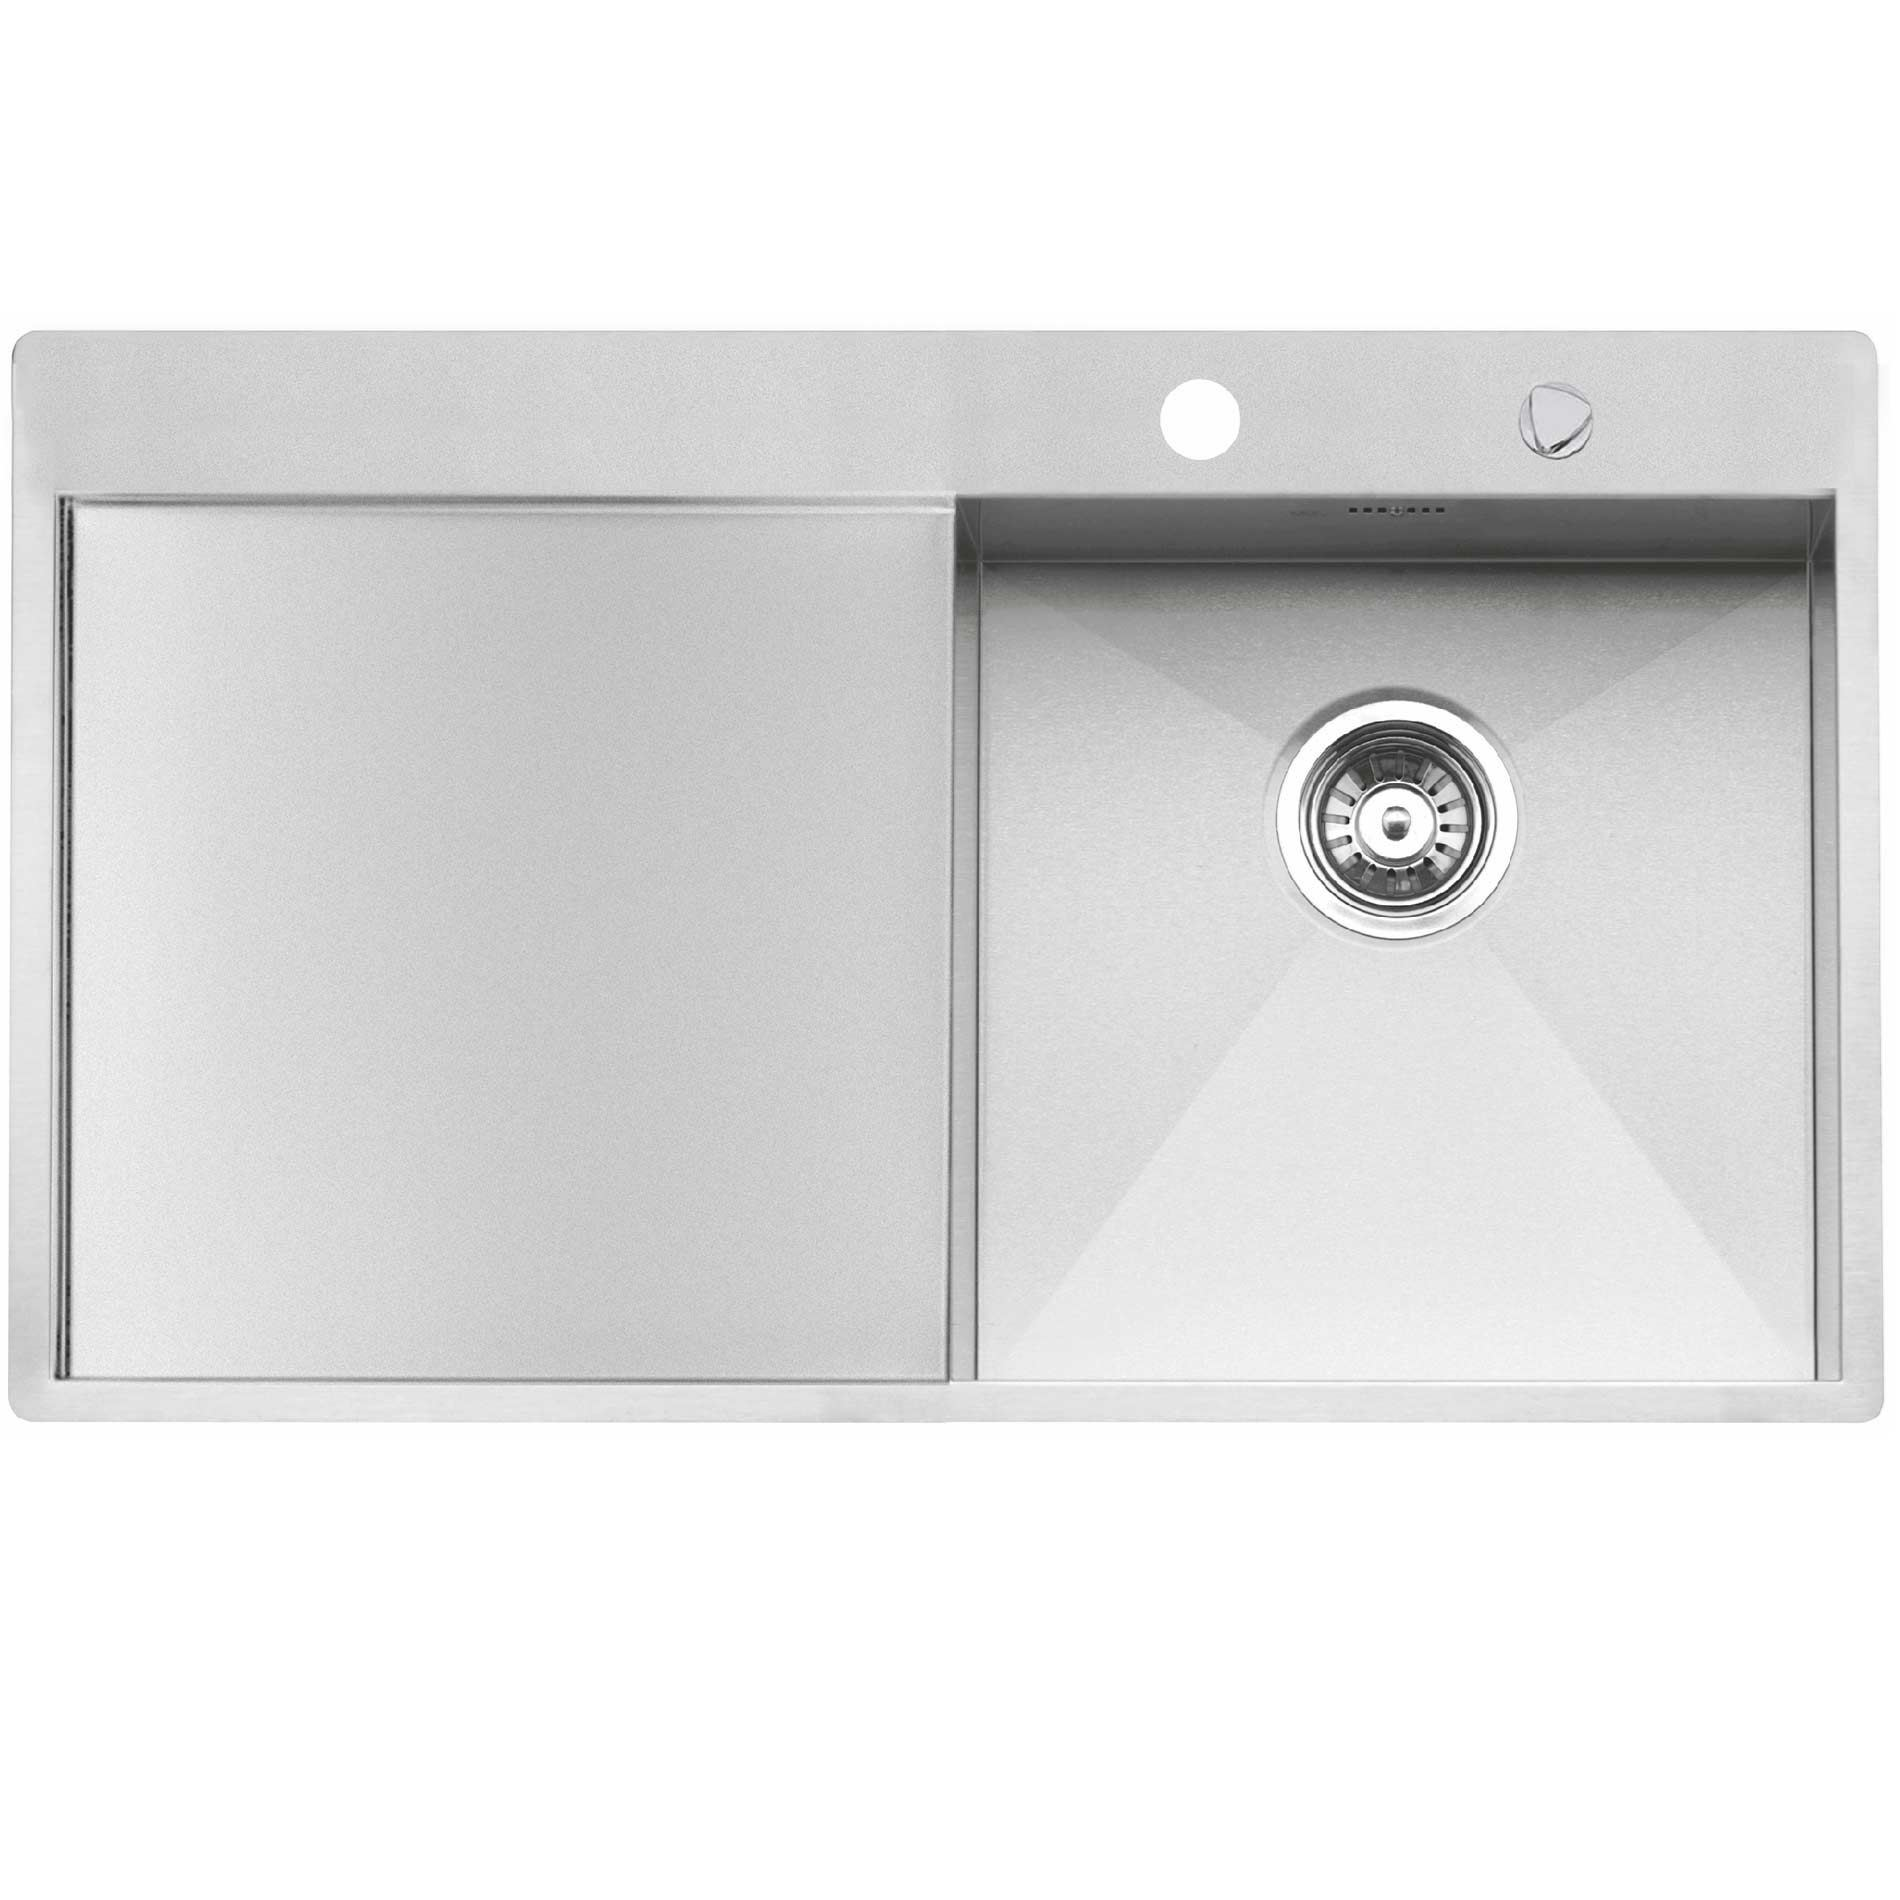 Picture of Ontario R10 Stainless Steel Sink